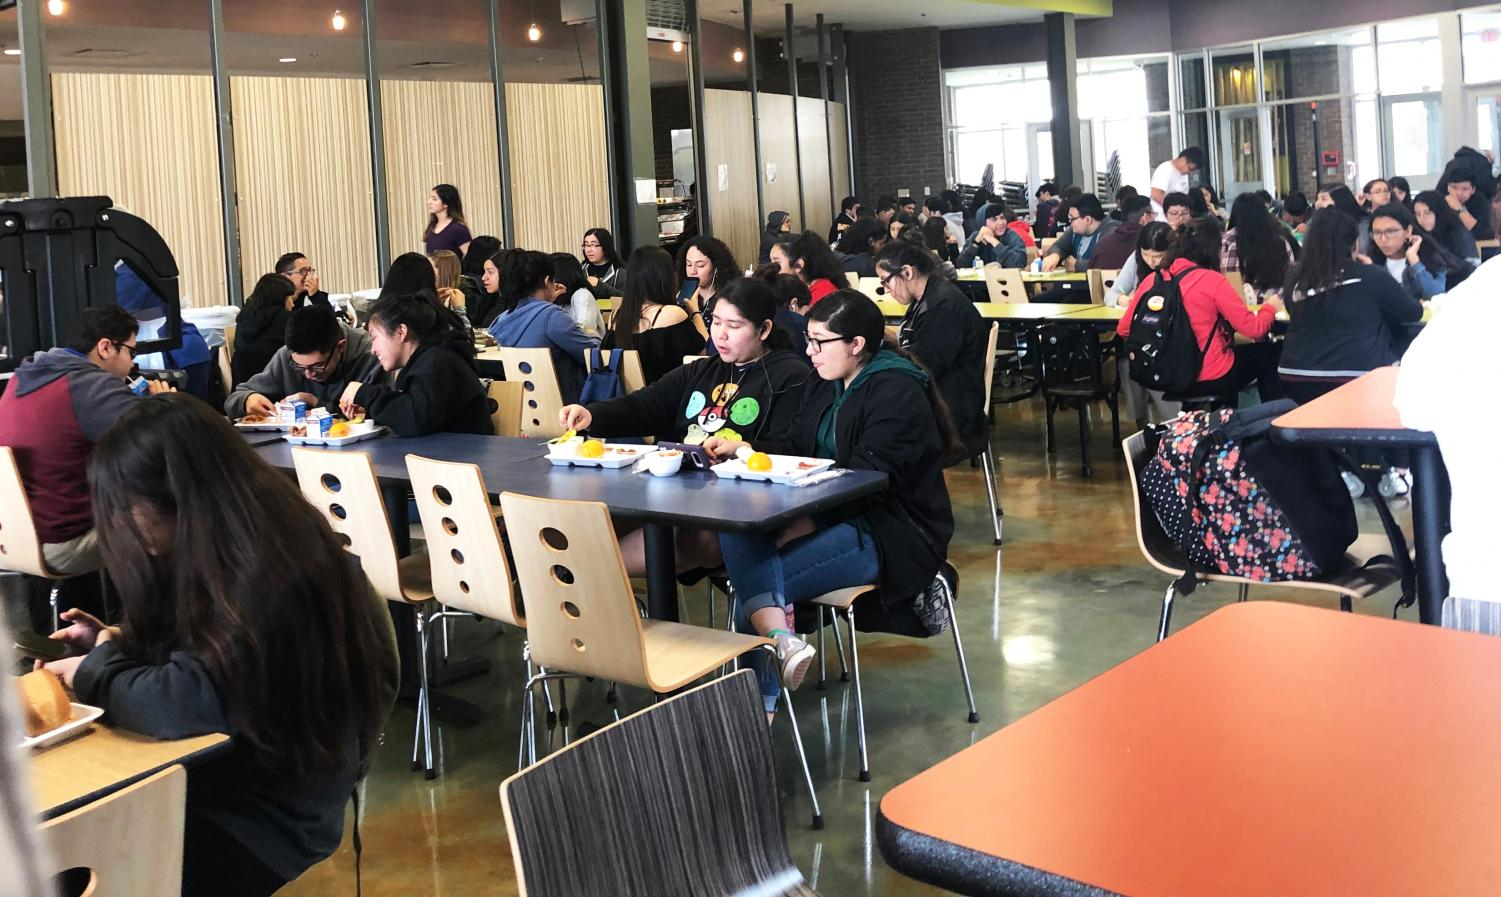 VMT students eat in the cafeteria during a recent lunch hour.